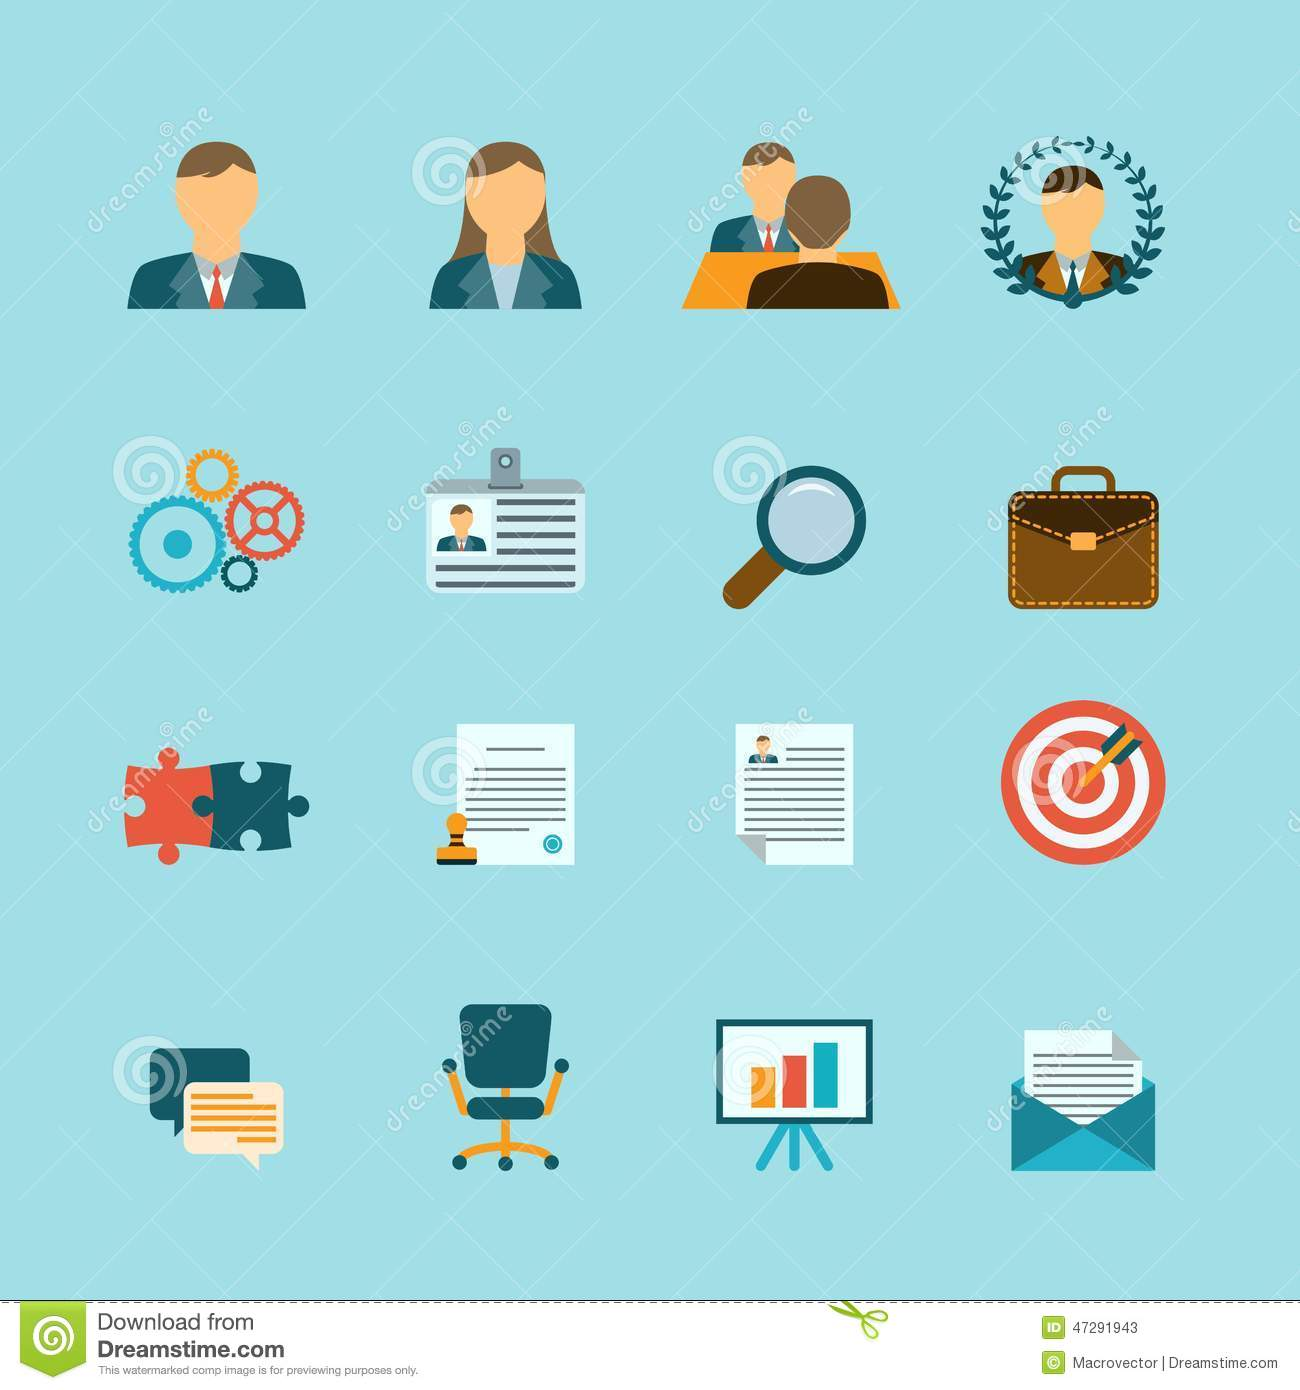 organization for efficient management Communication the structure of an organization is efficient only if it encourages clear communication across company lines, according to the free management library.